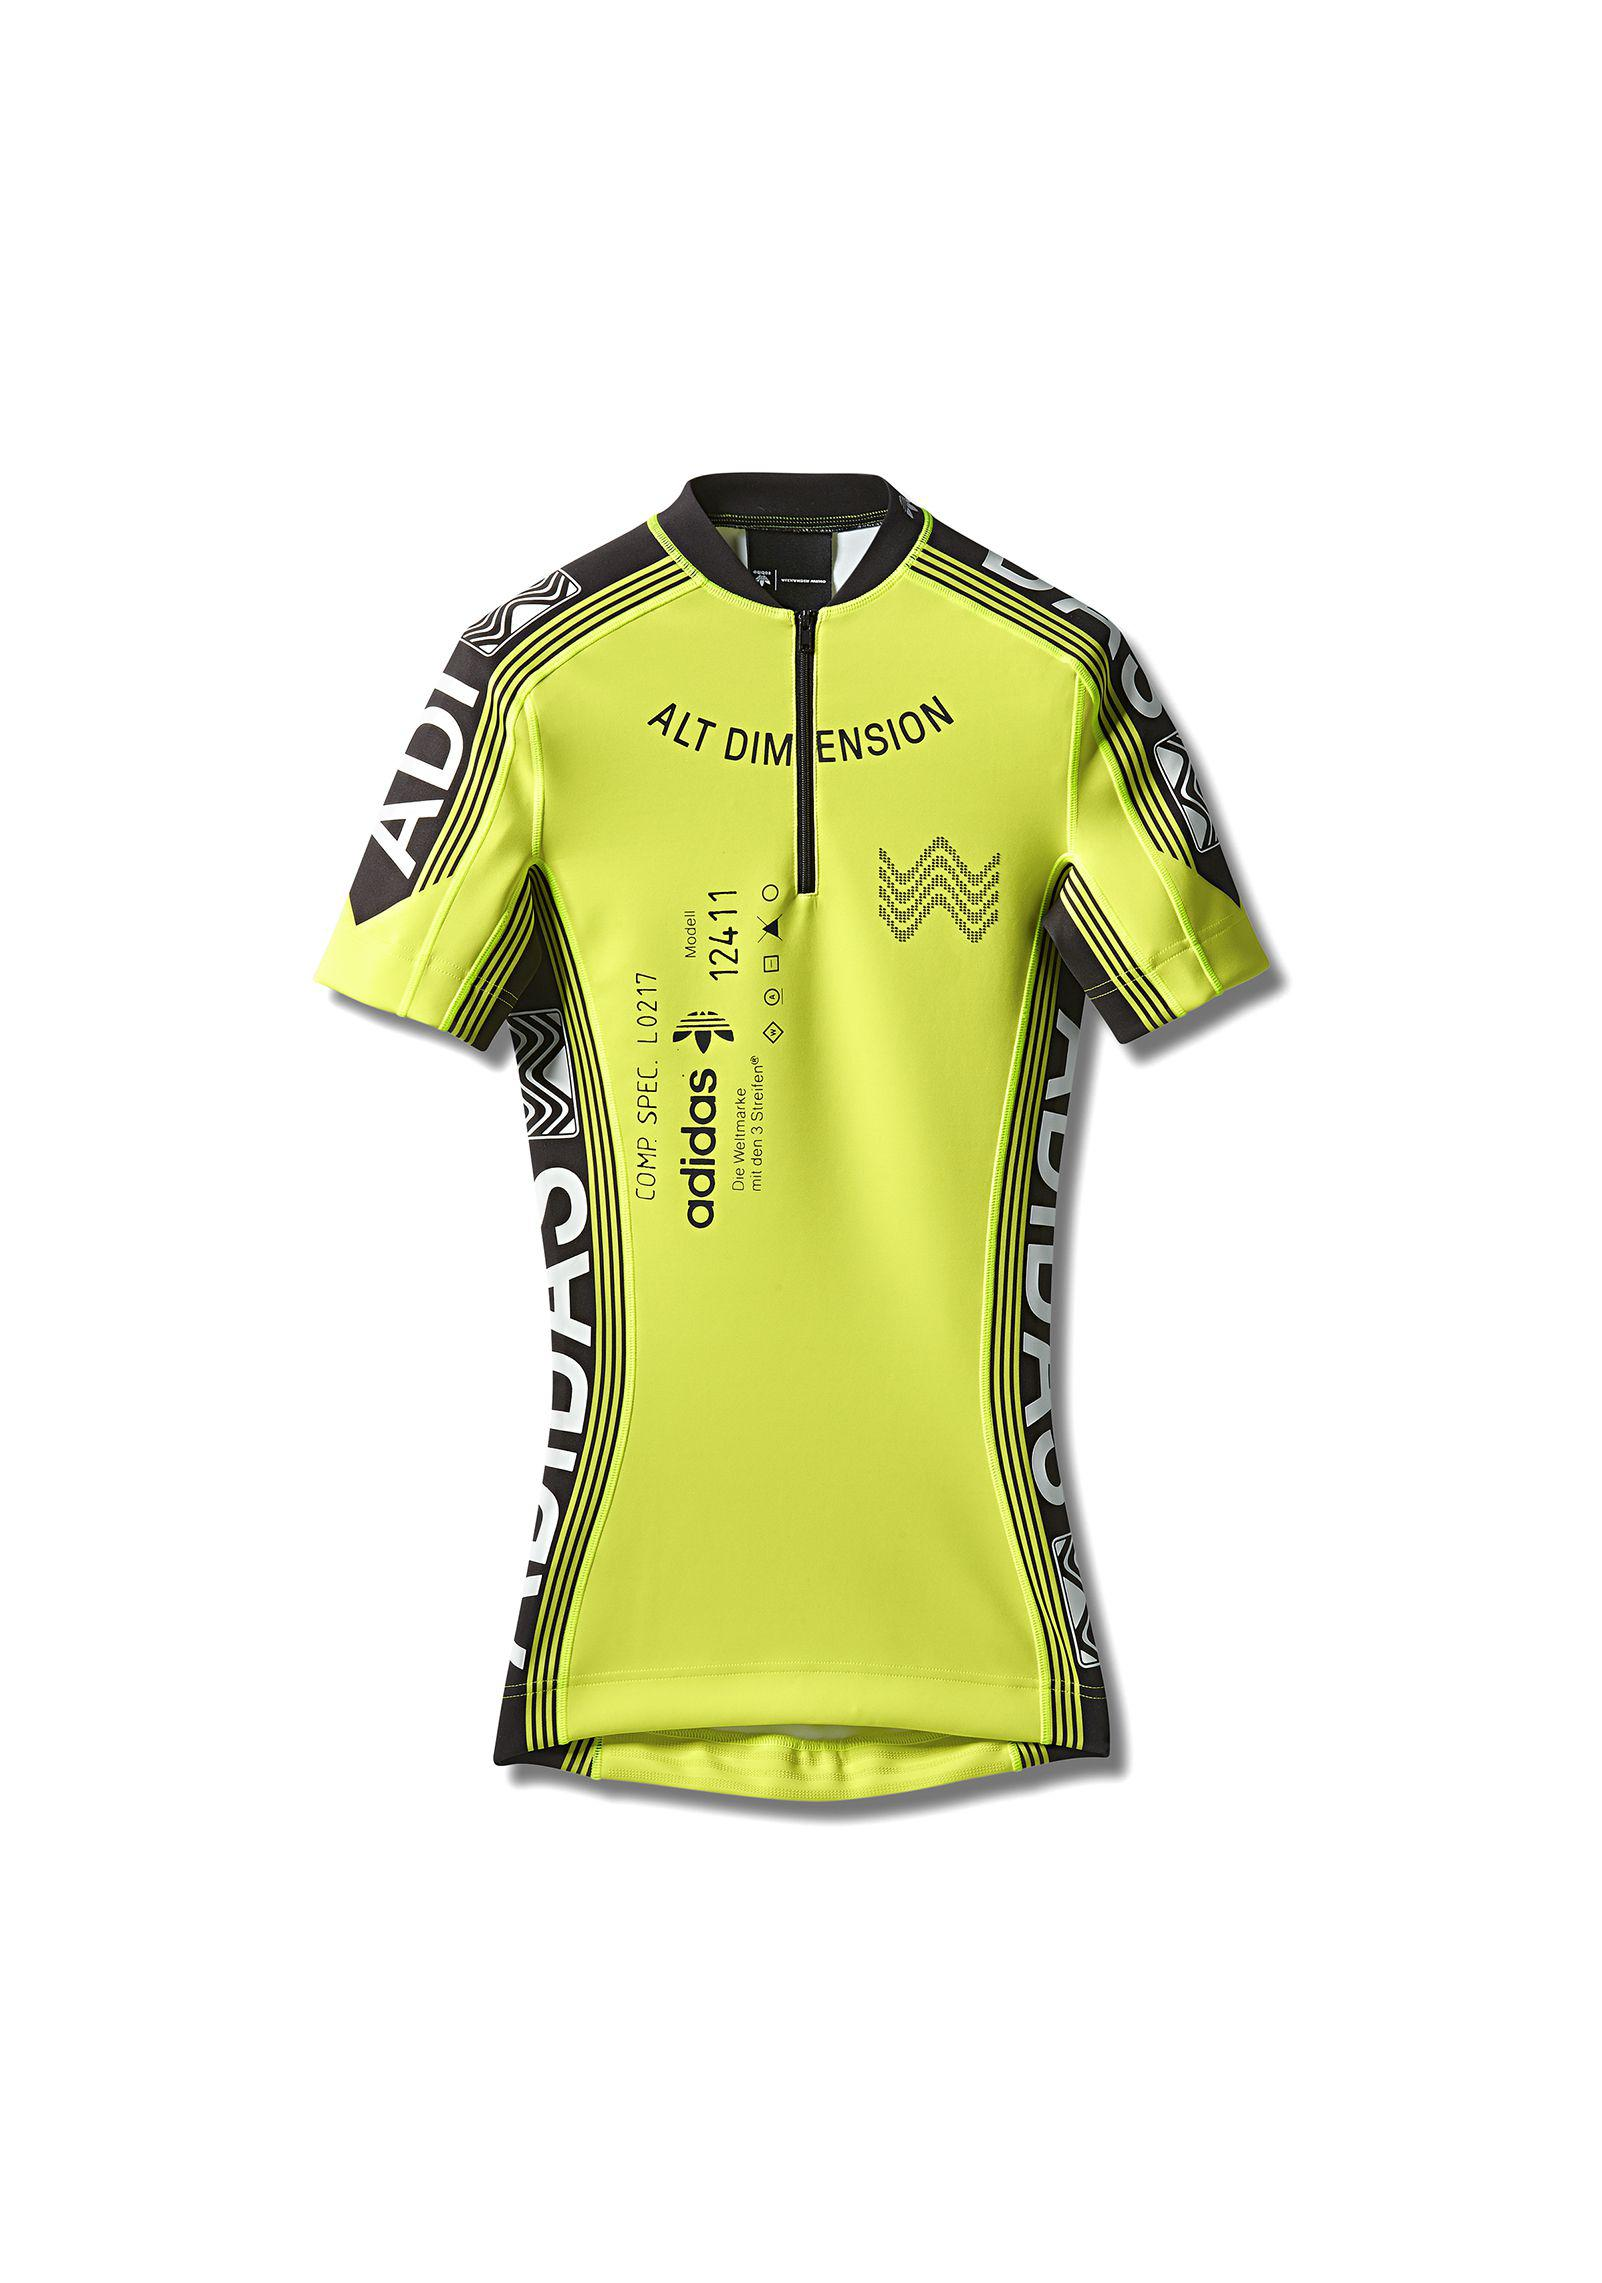 7dfd01e1 Alexander Wang Adidas Orignals By Aw Cycling Jersey in Yellow for ...